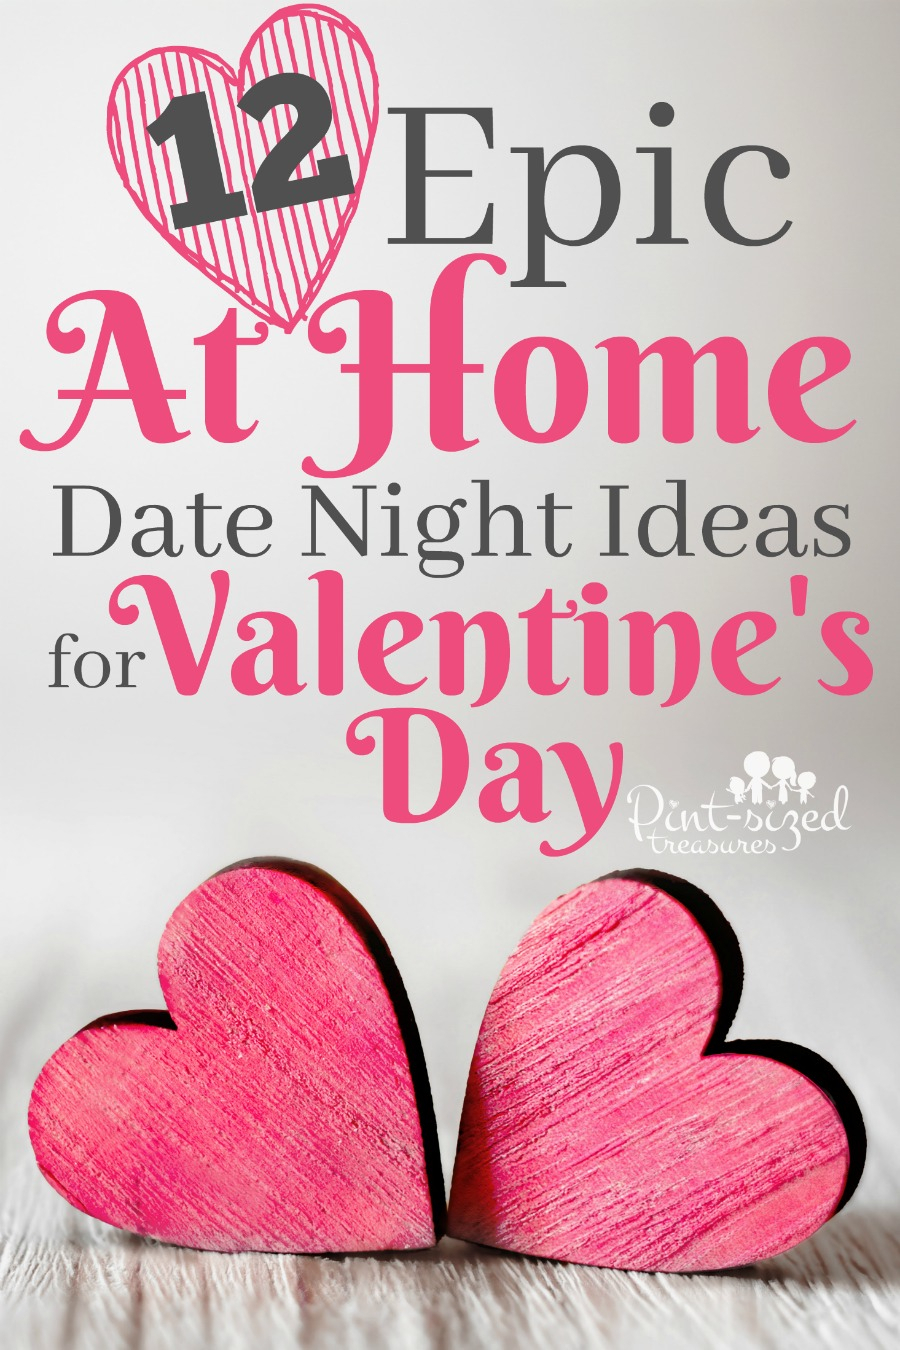 10 Ideal Great Valentines Day Date Ideas 12 epic at home date night ideas for valentines day c2b7 pint sized 8 2021